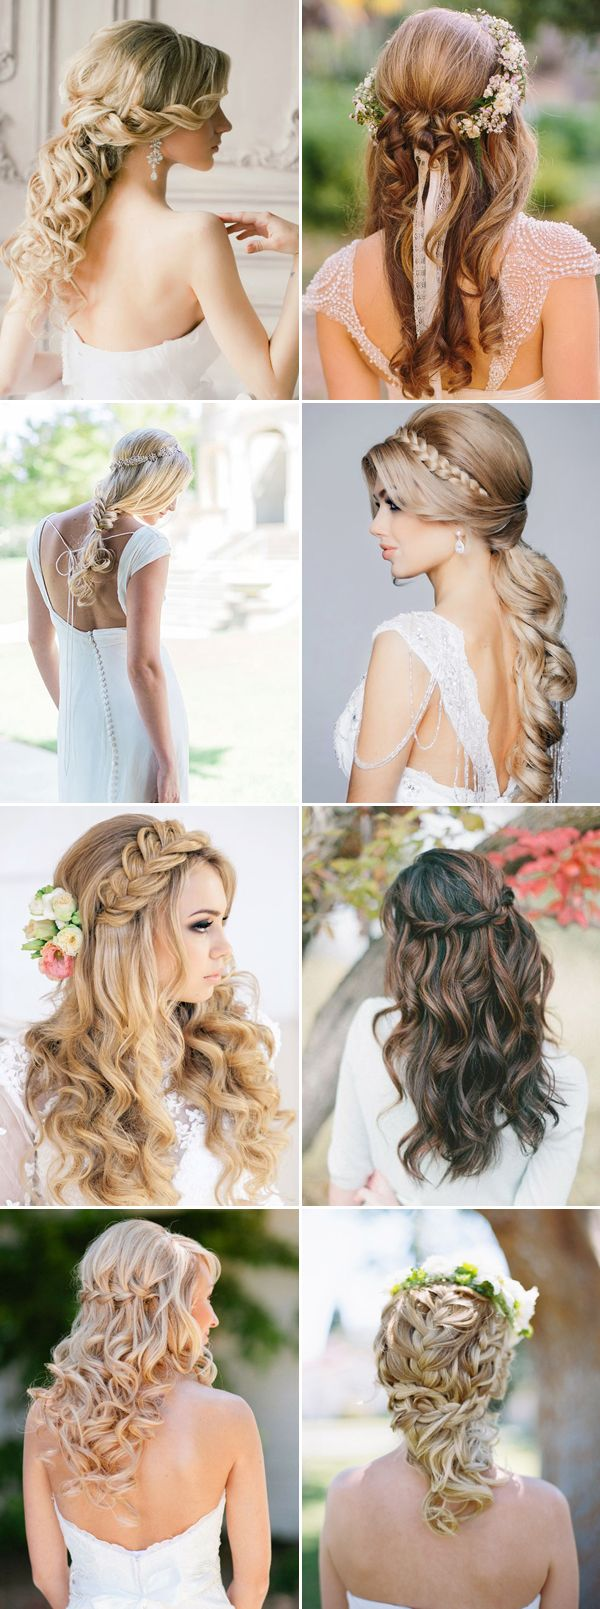 16 Gorgeous Half Up, Half Down Hairstyles for Brides - Partially Braided